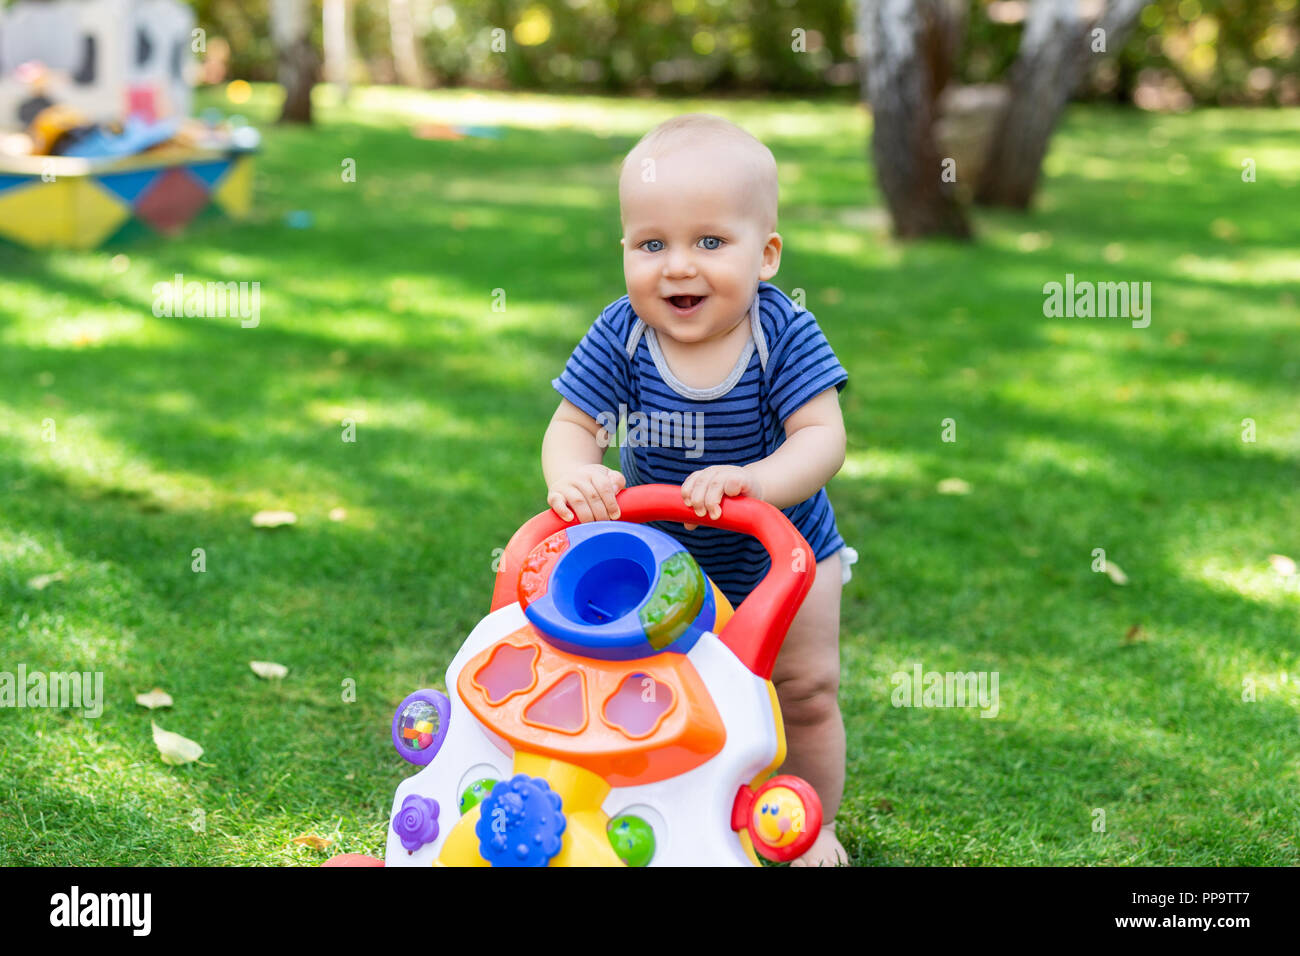 Cute little boy learning to walk with walker toy on green grass lawn at backyard. Baby laughing and having fun making first step at park on bright sunny day outdoors. Happy childhood concept - Stock Image